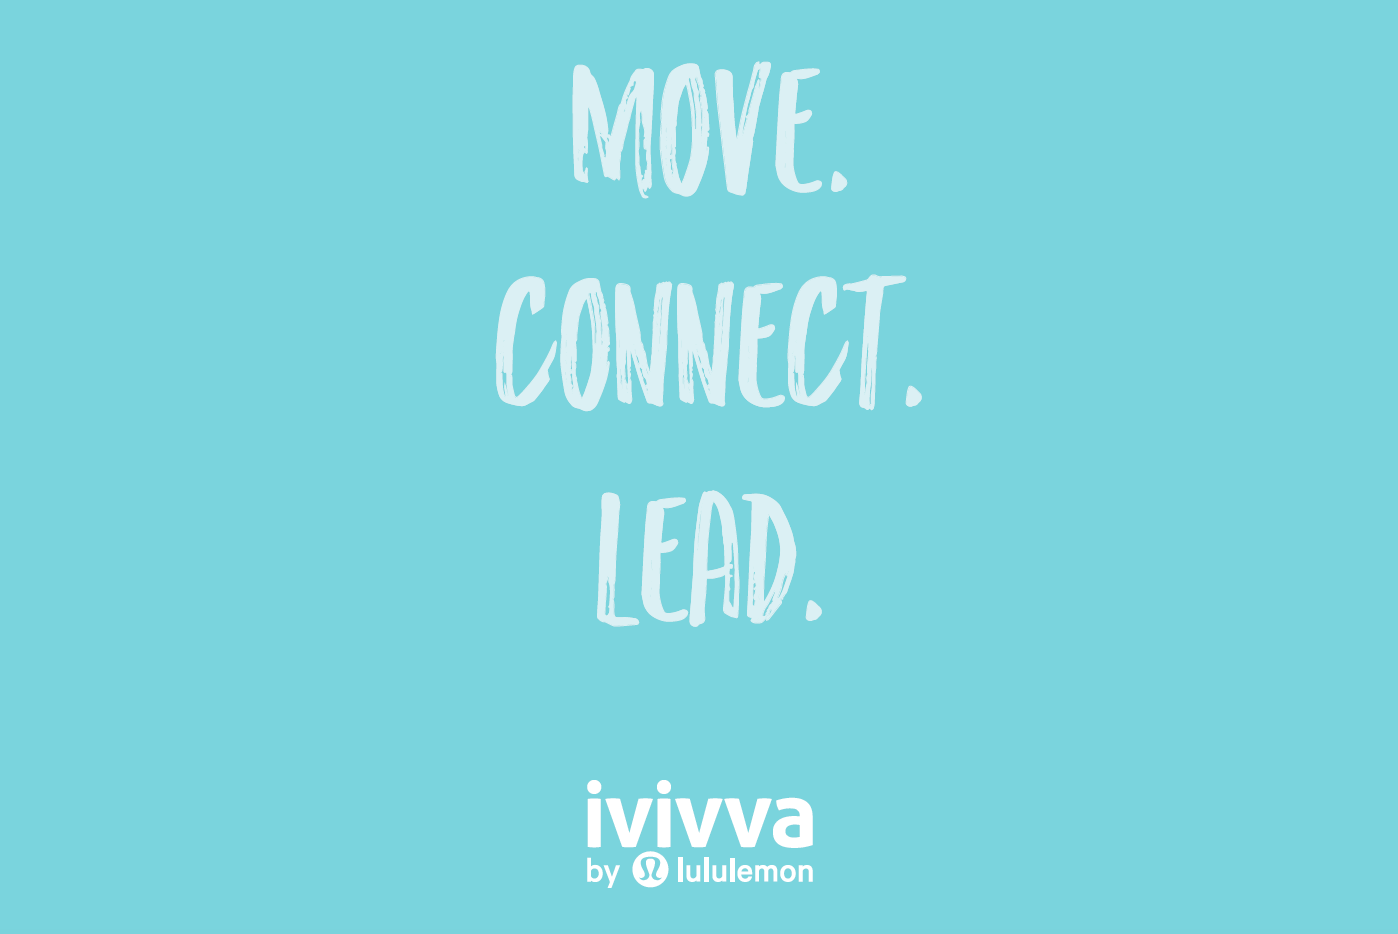 move.connect.lead